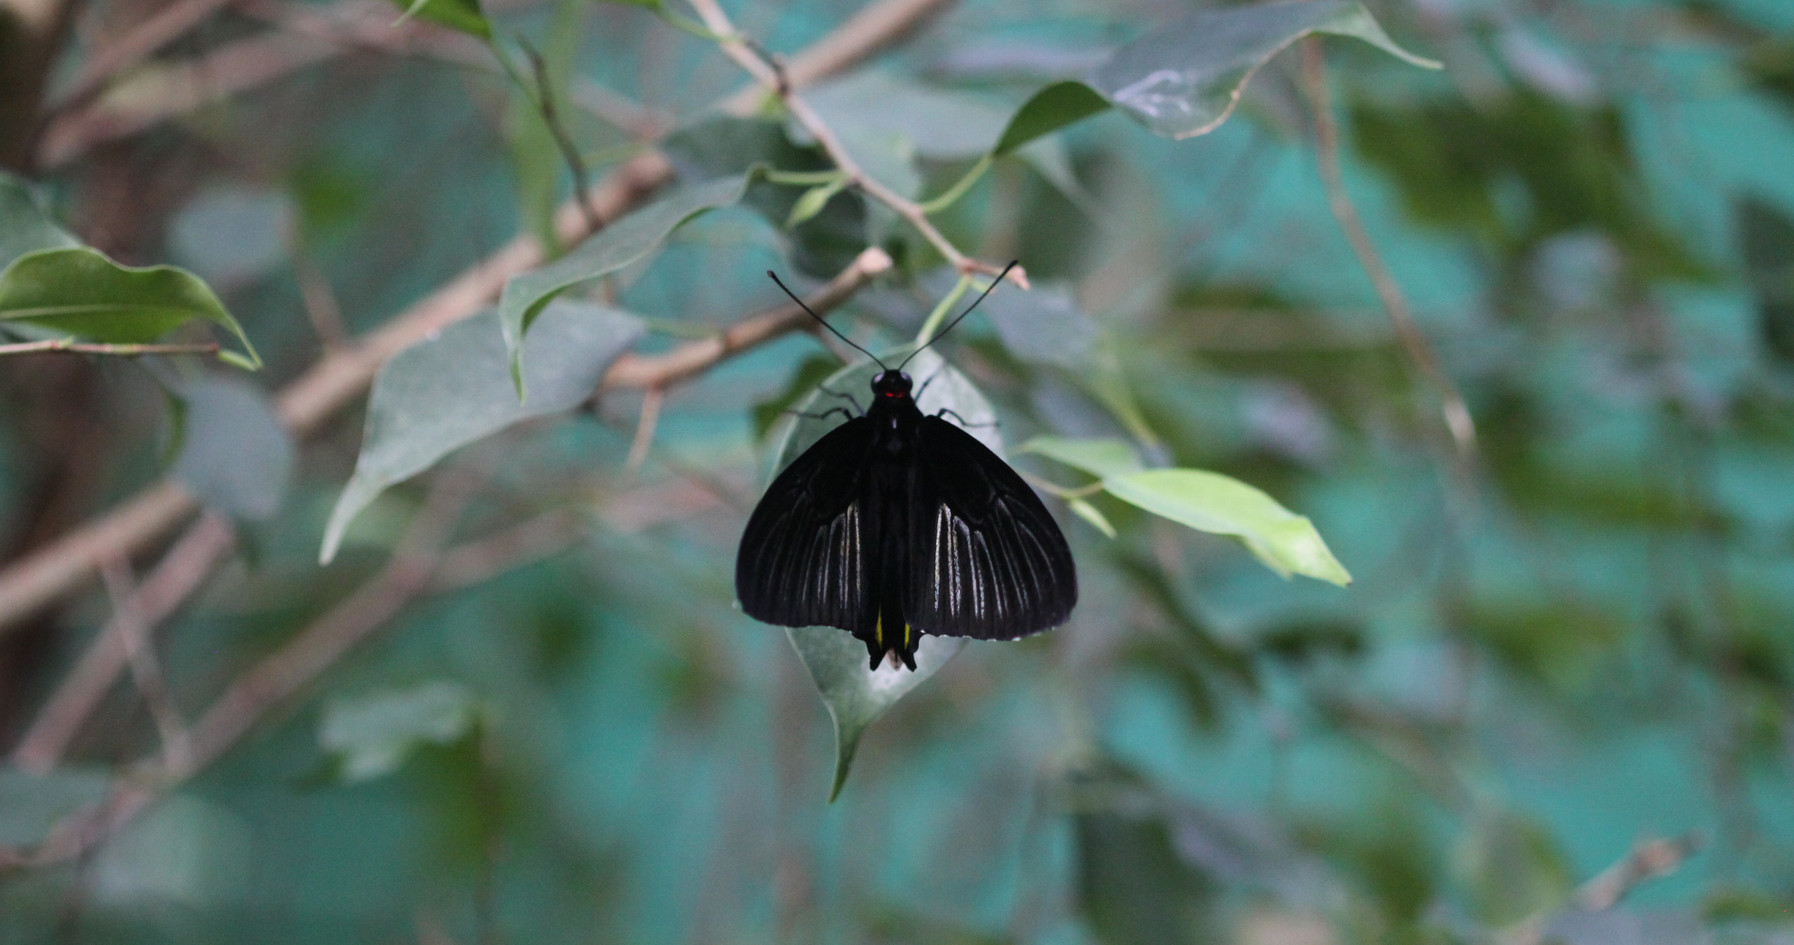 A Golden Birdwing (dorsal view)